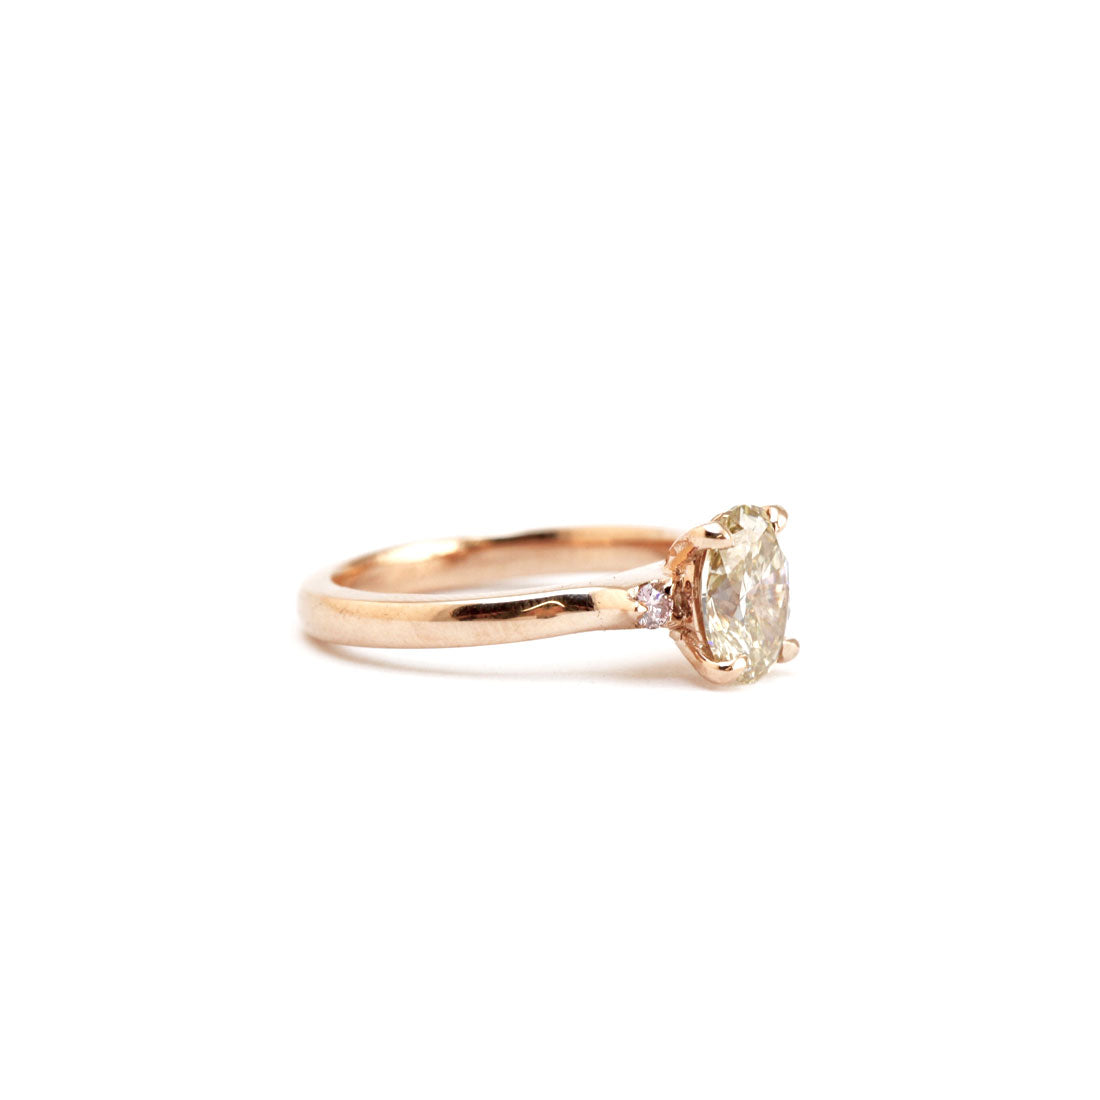 Oval Champagne diamond engagement ring